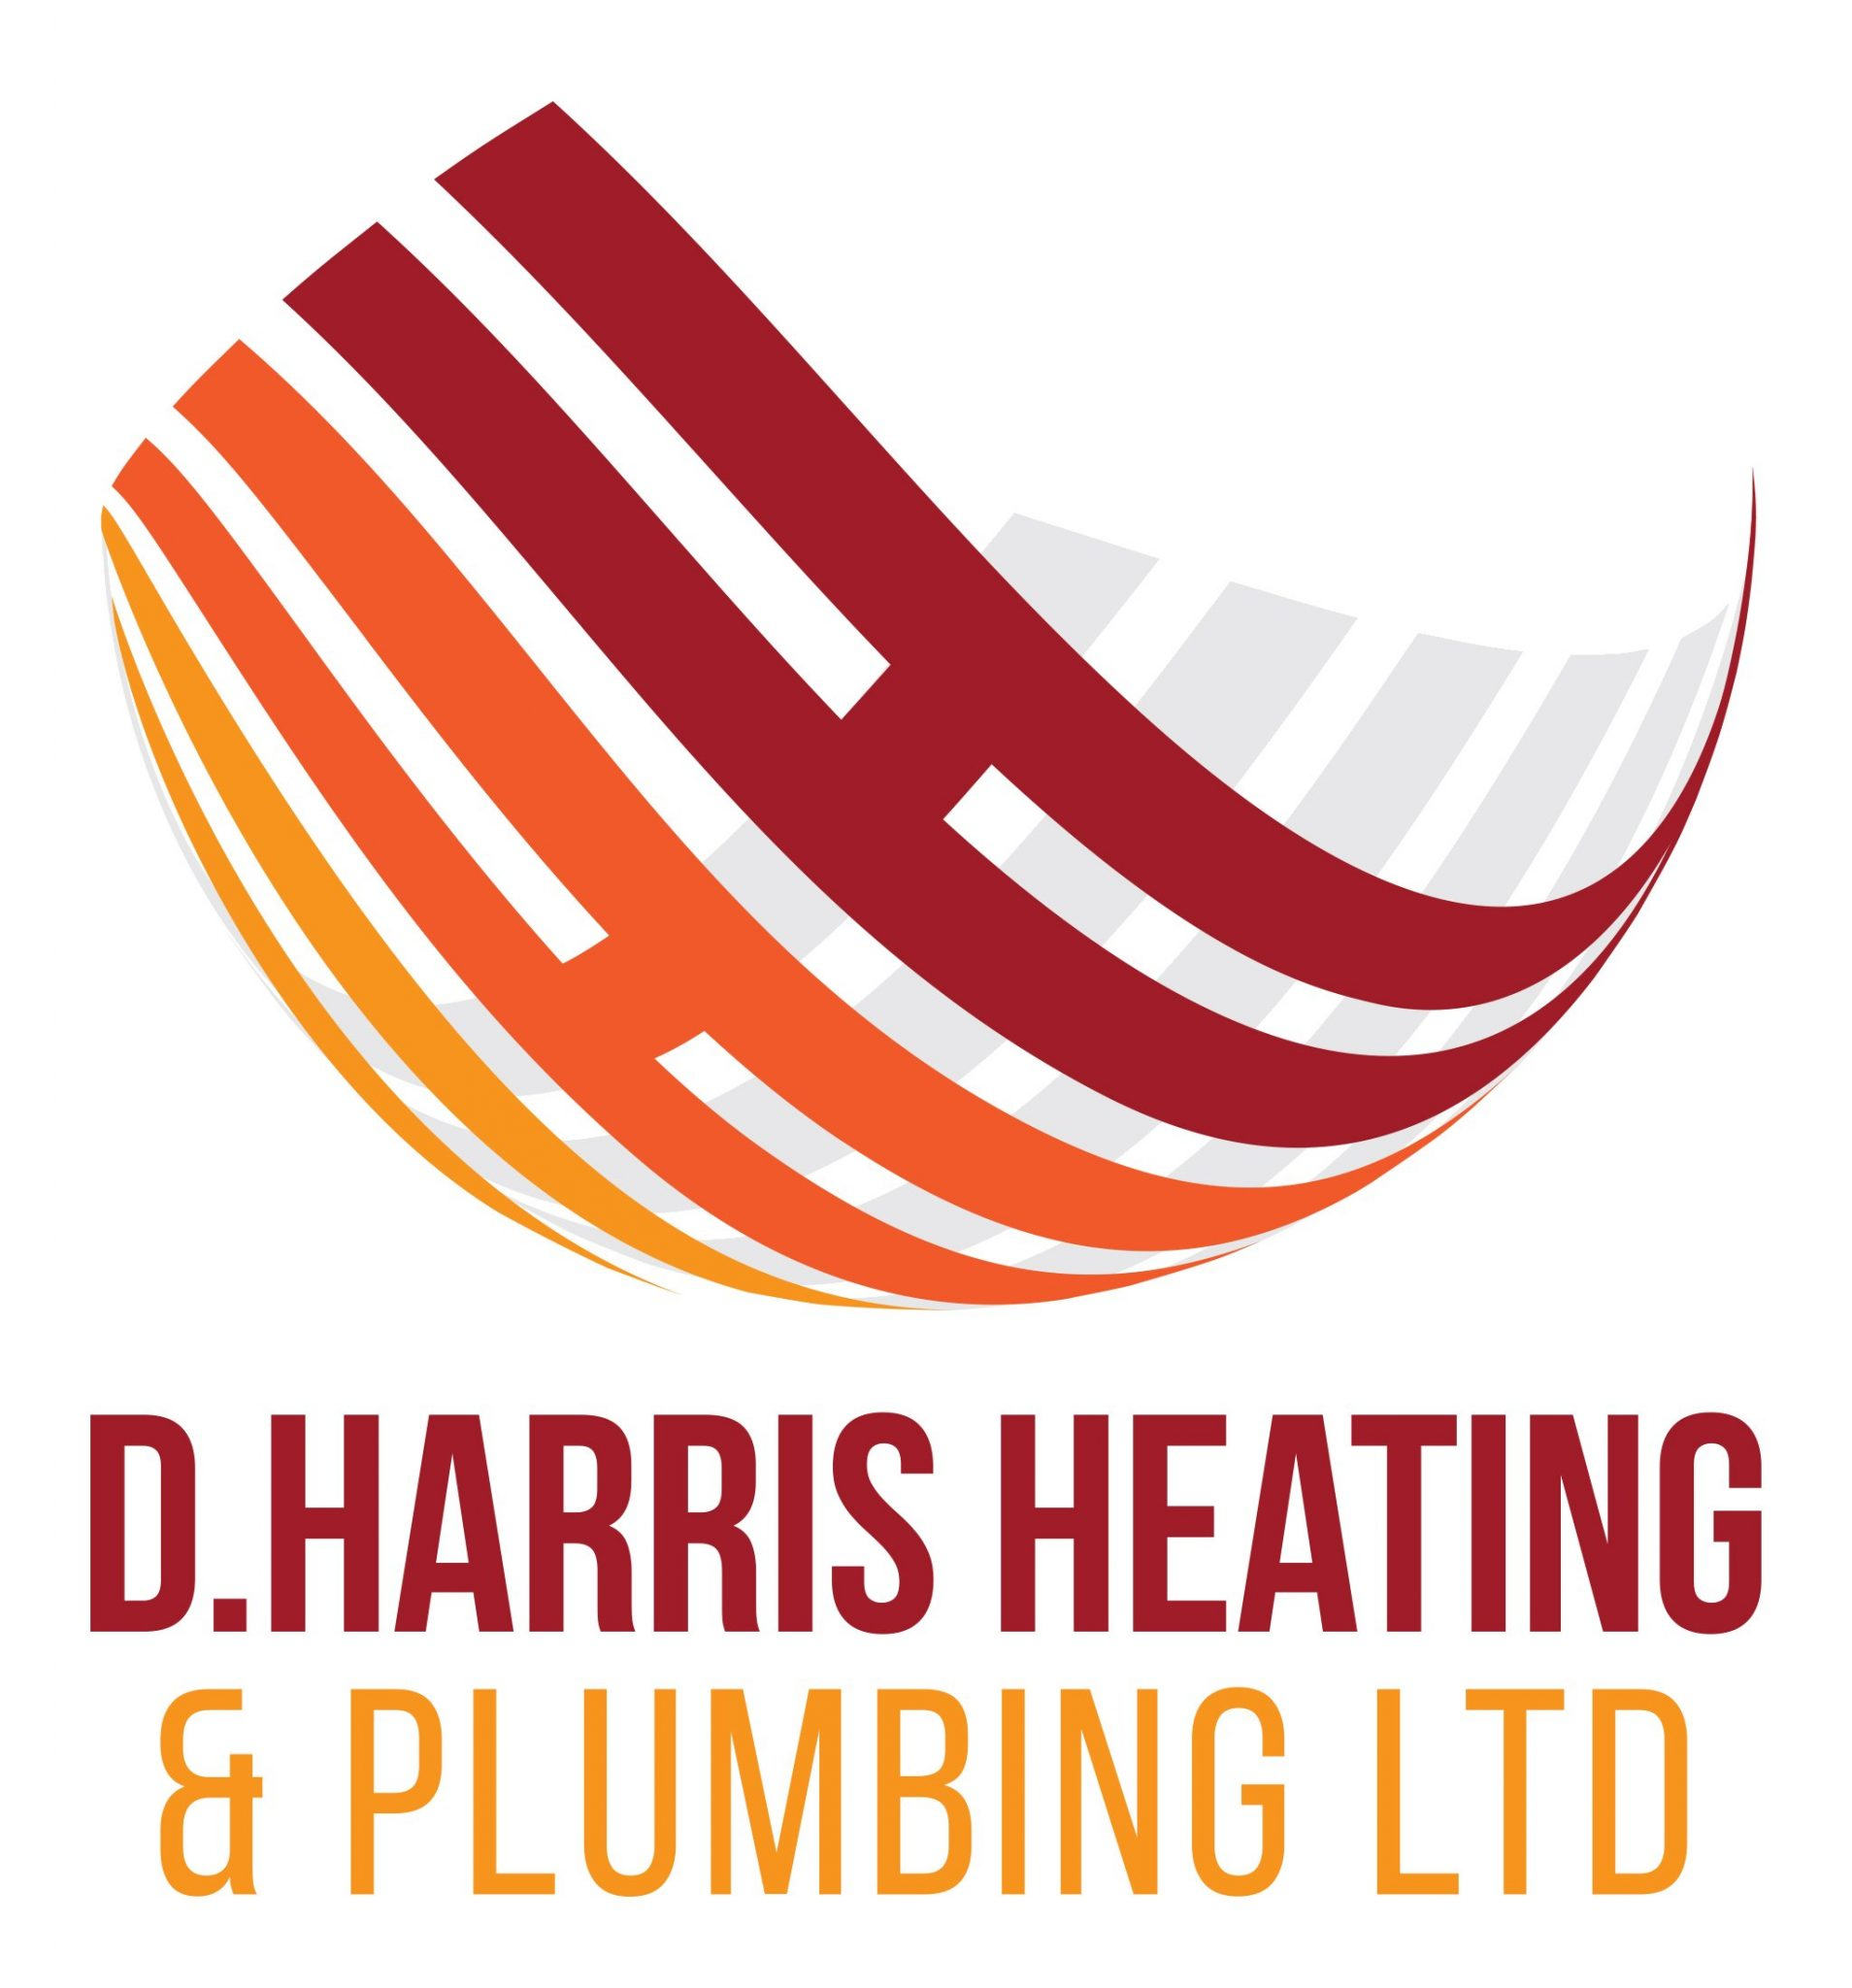 Harris Heating & Plumbing